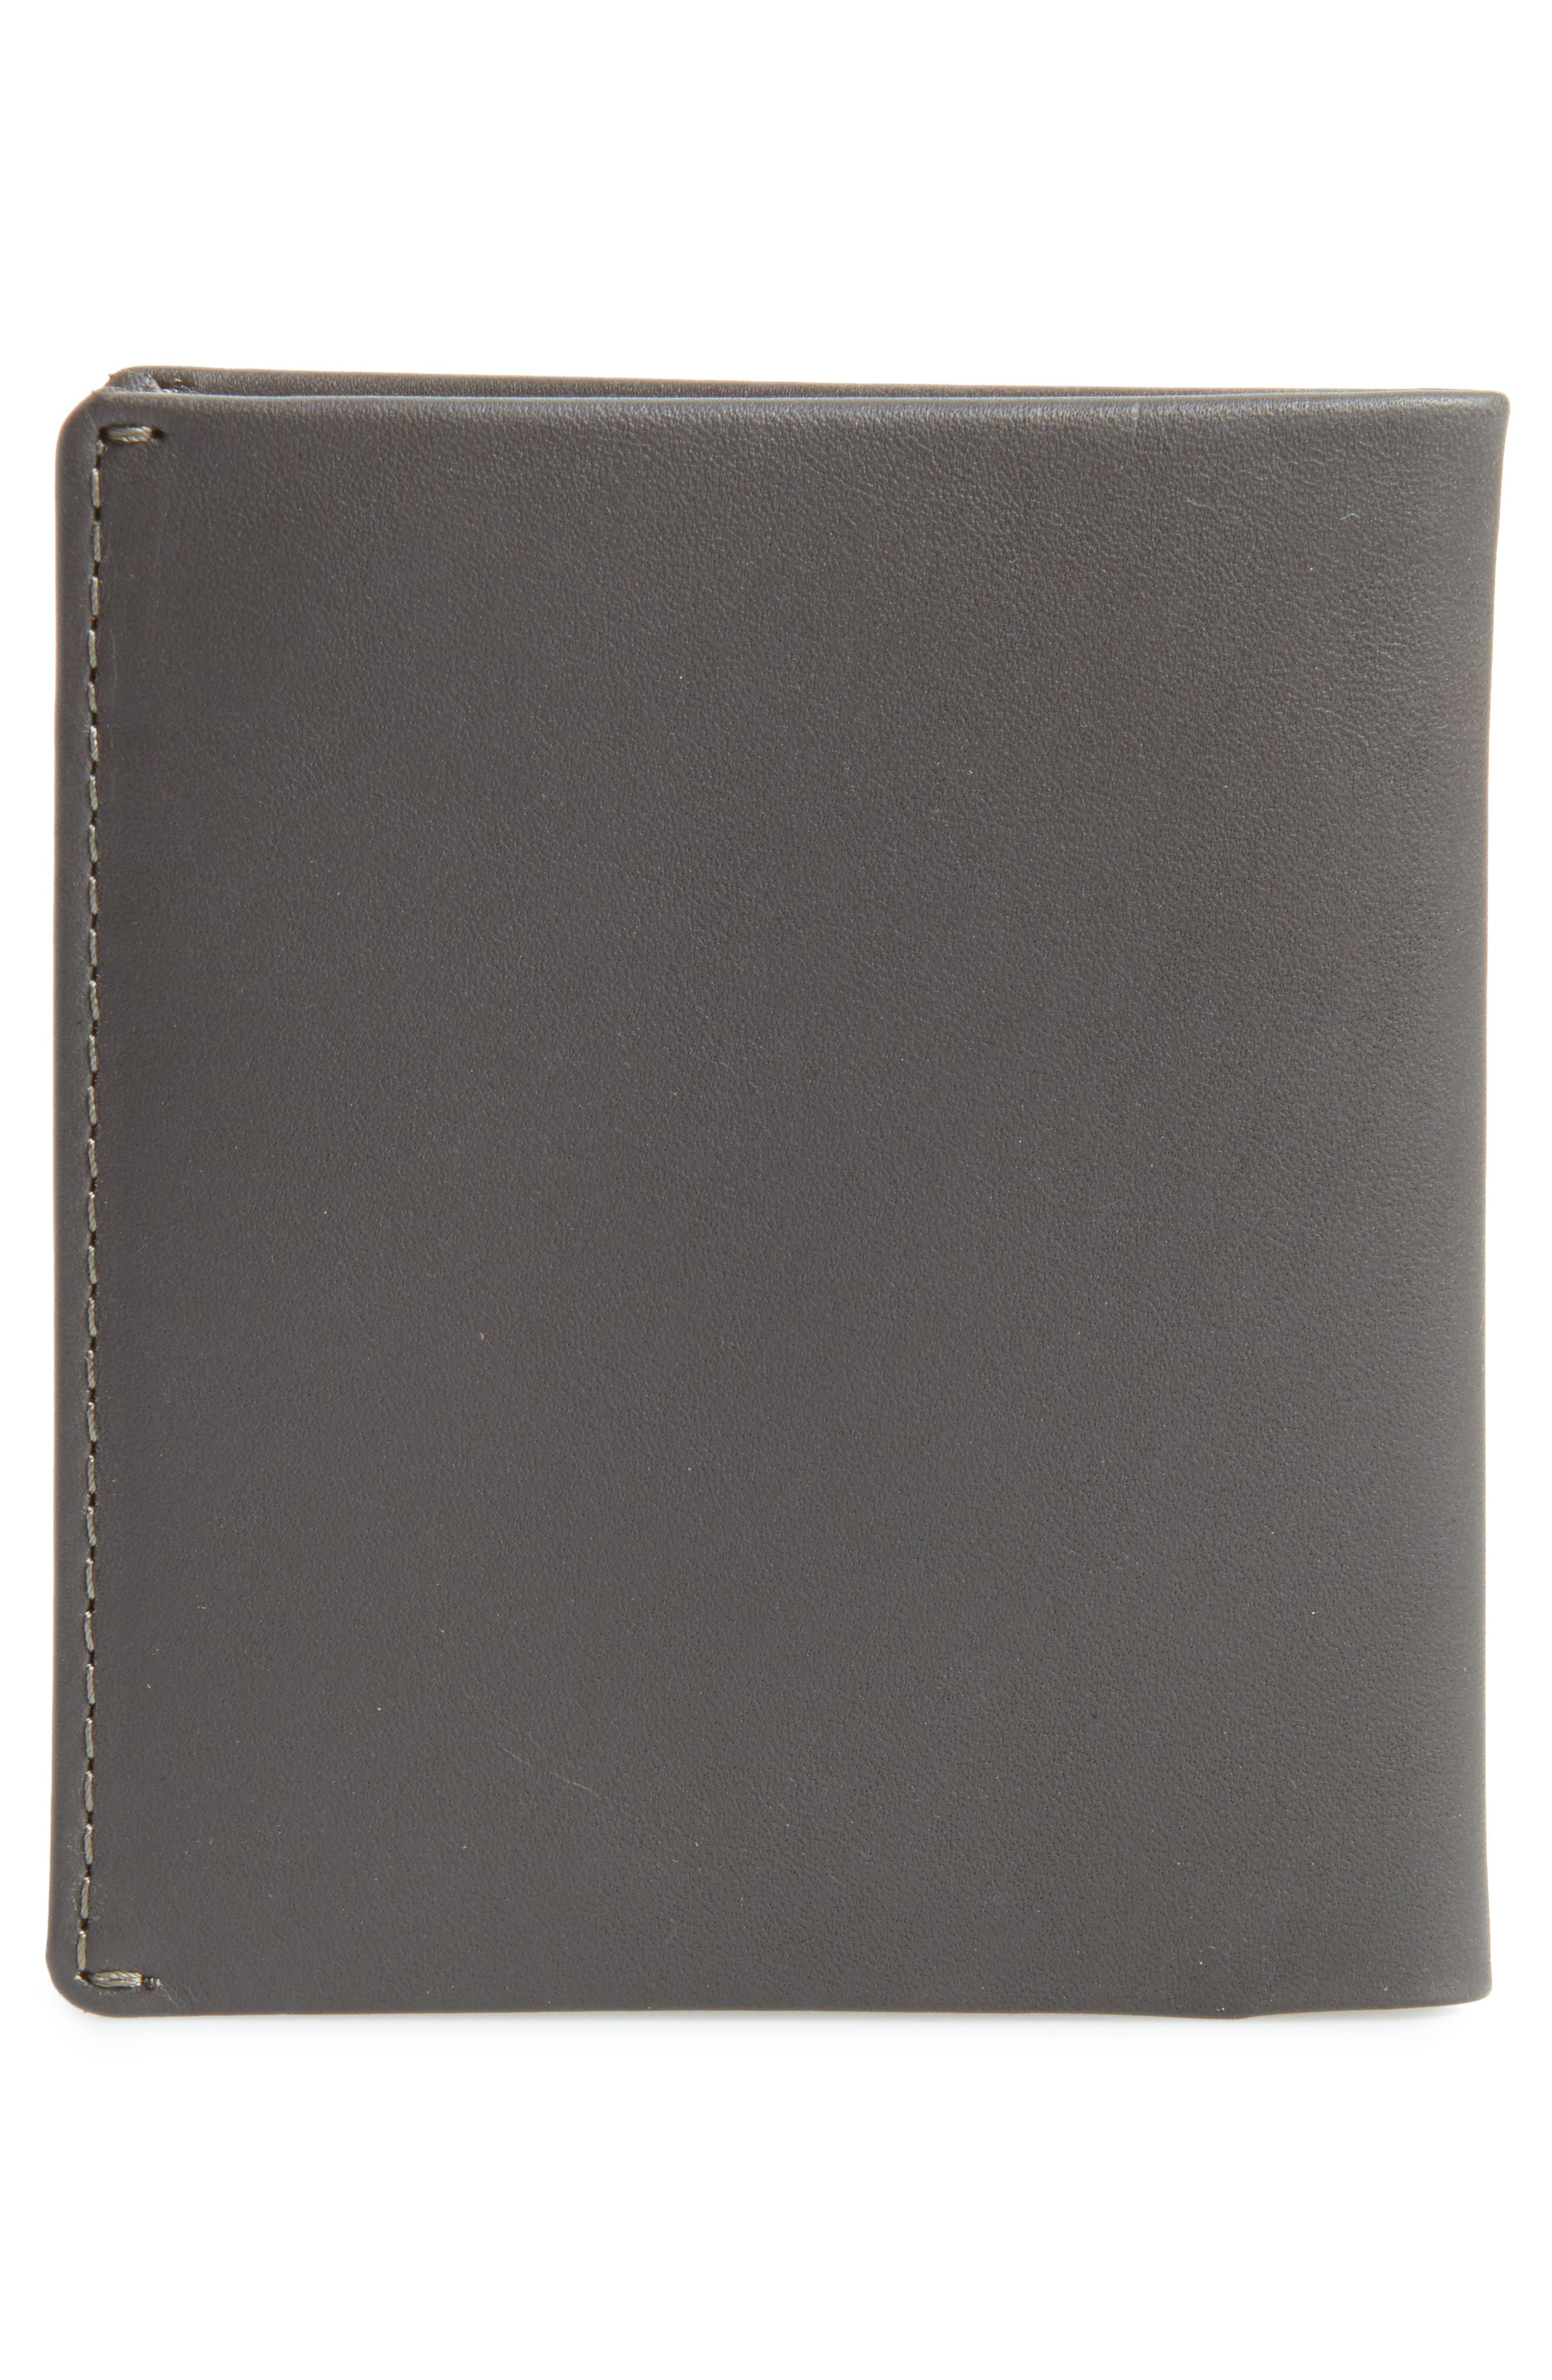 Note Sleeve Wallet,                             Alternate thumbnail 3, color,                             010